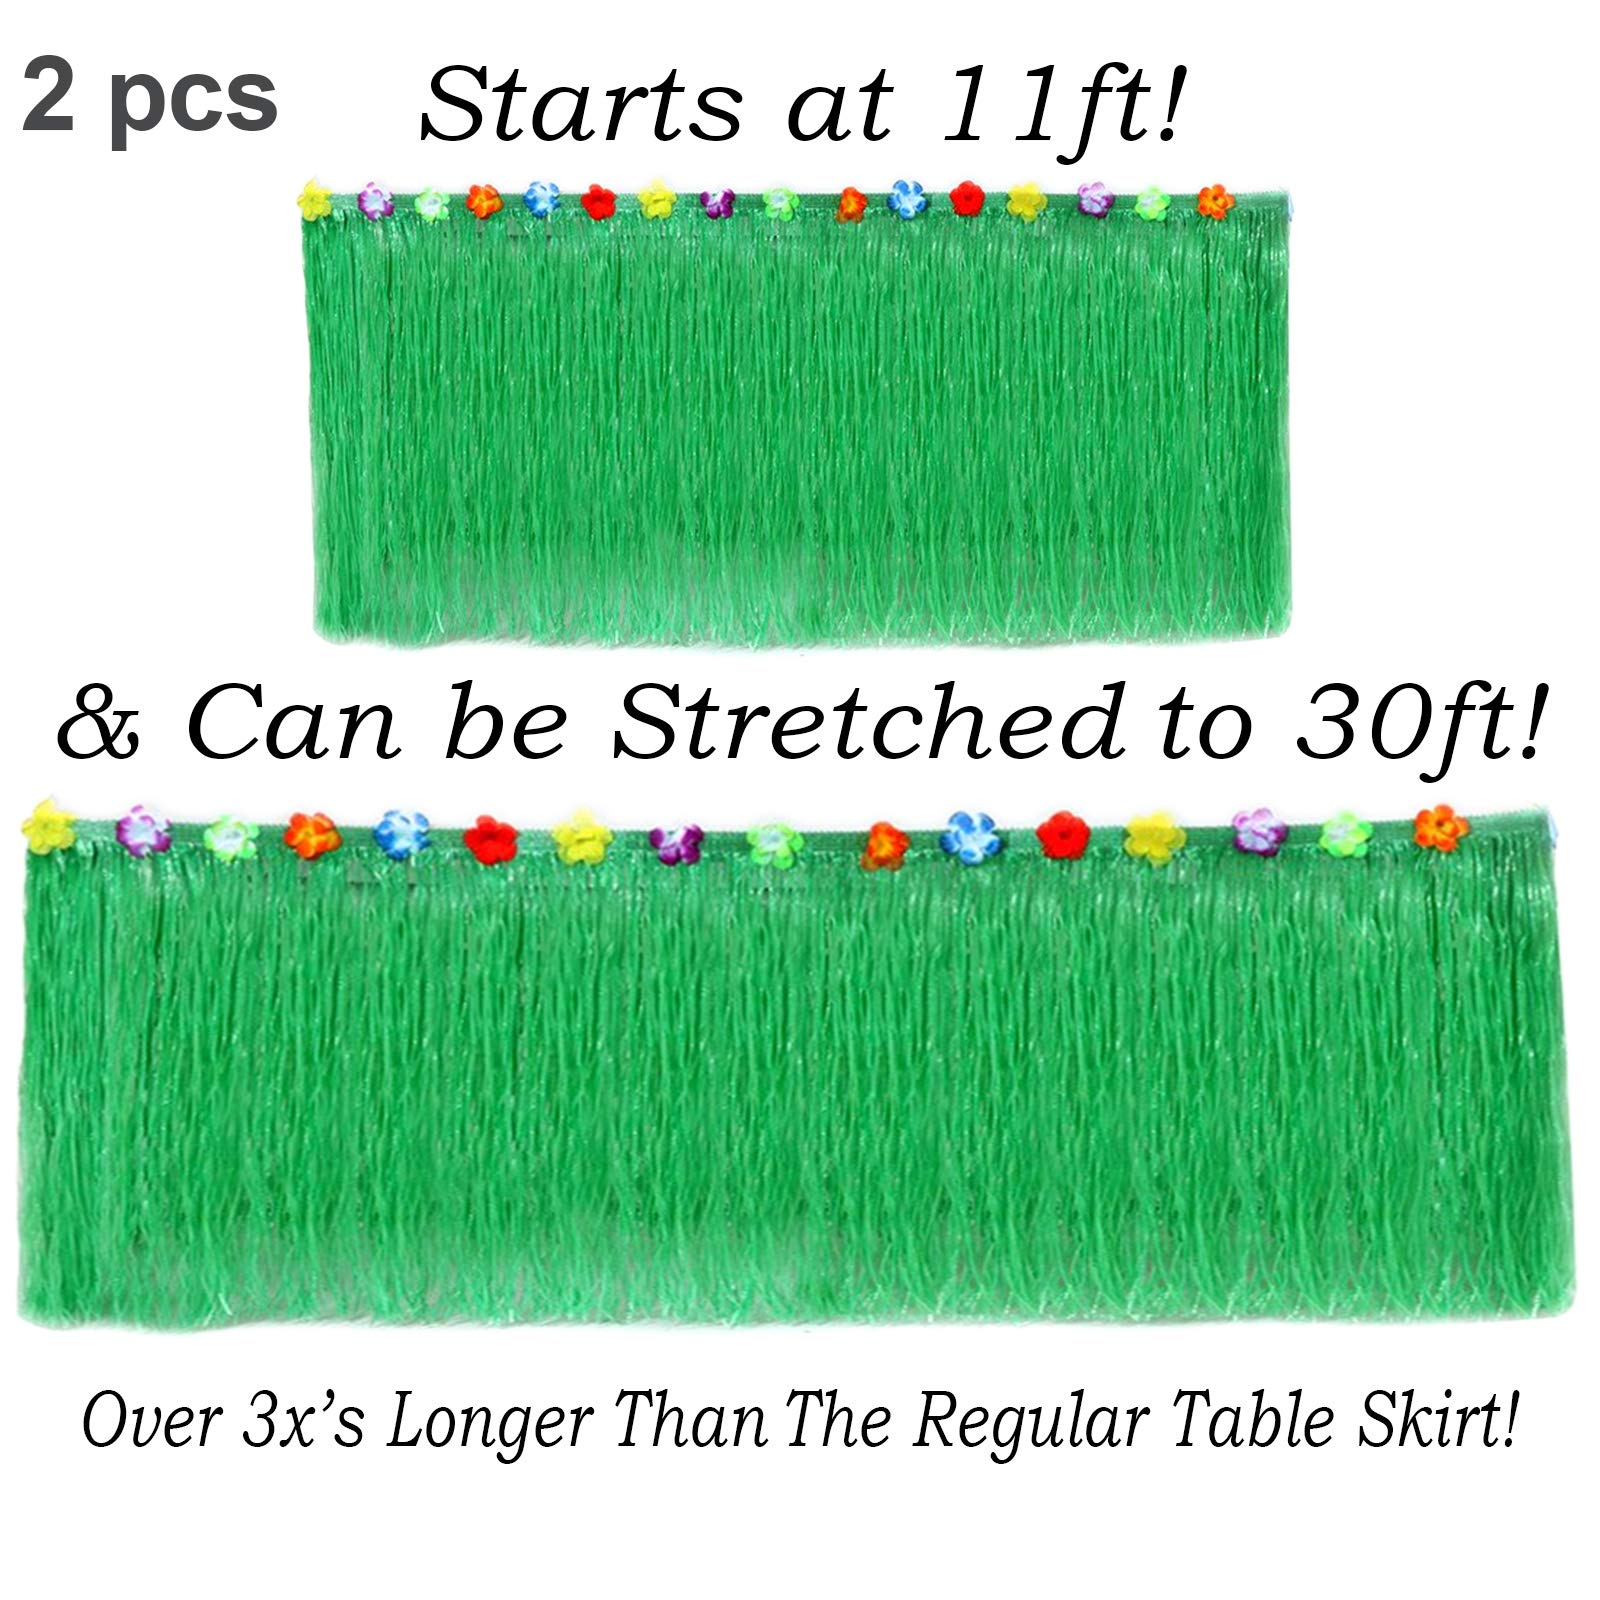 Hawaiian Table Skirt 11ft Long Stretches to 30ft! | (29'' Tall) Green Hibiscus Luau Party Decoration | Tropical Theme Decor (2 Table Skirts)